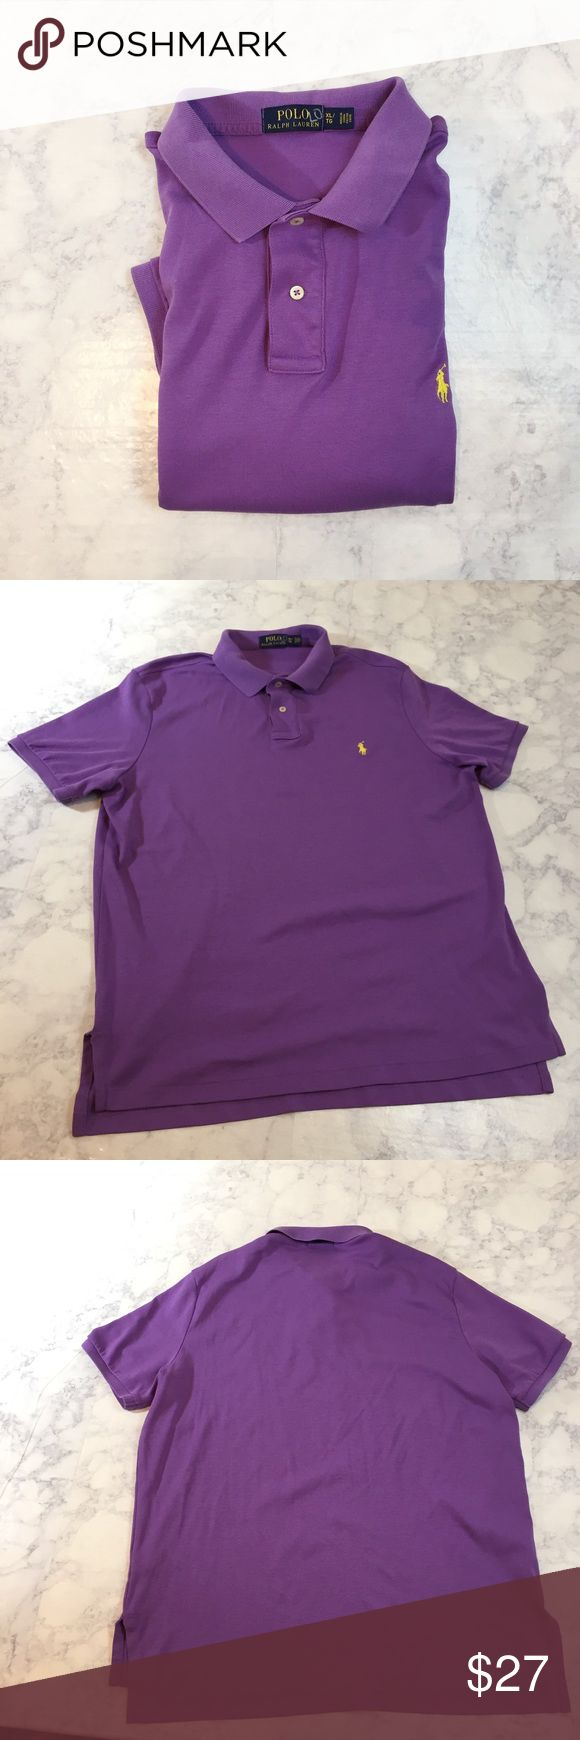 "Polo Ralph Lauren Purple short sleeve polo shirt Polo Ralph Lauren Purple Polo Shirt  Gently used, in good Condition. Has a minor hole on side bottom hem. Hardly noticeable, please review photos carefully.  Size XL  Length 29""  Width 23"" underarm to underarm  Laid flat, not stretched or doubled Polo by Ralph Lauren Shirts Polos"